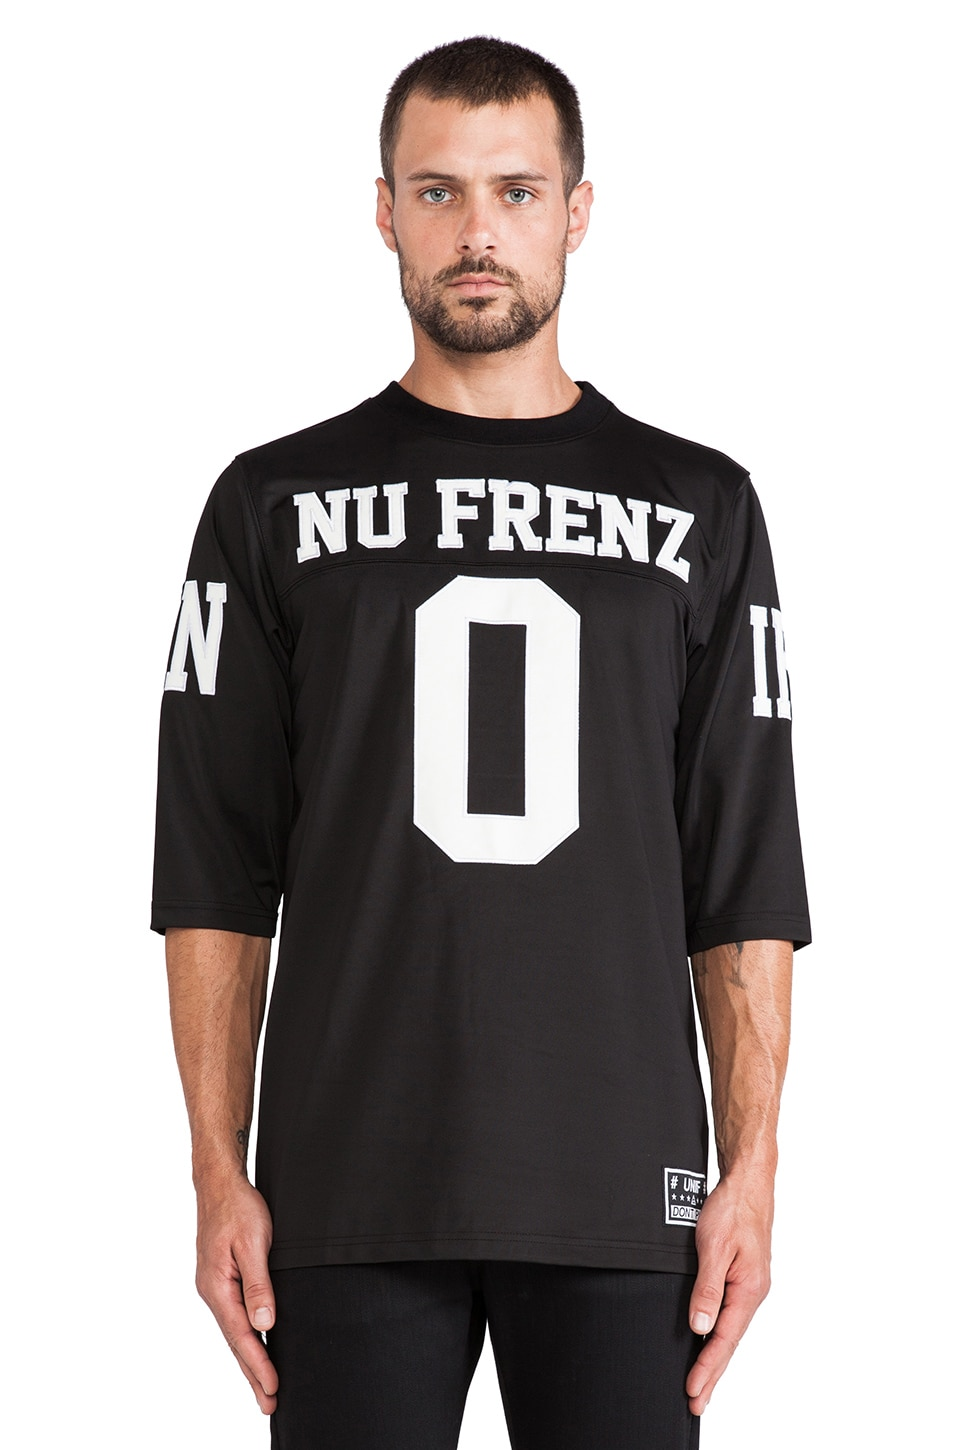 UNIF No New Frenz Jersey in Black